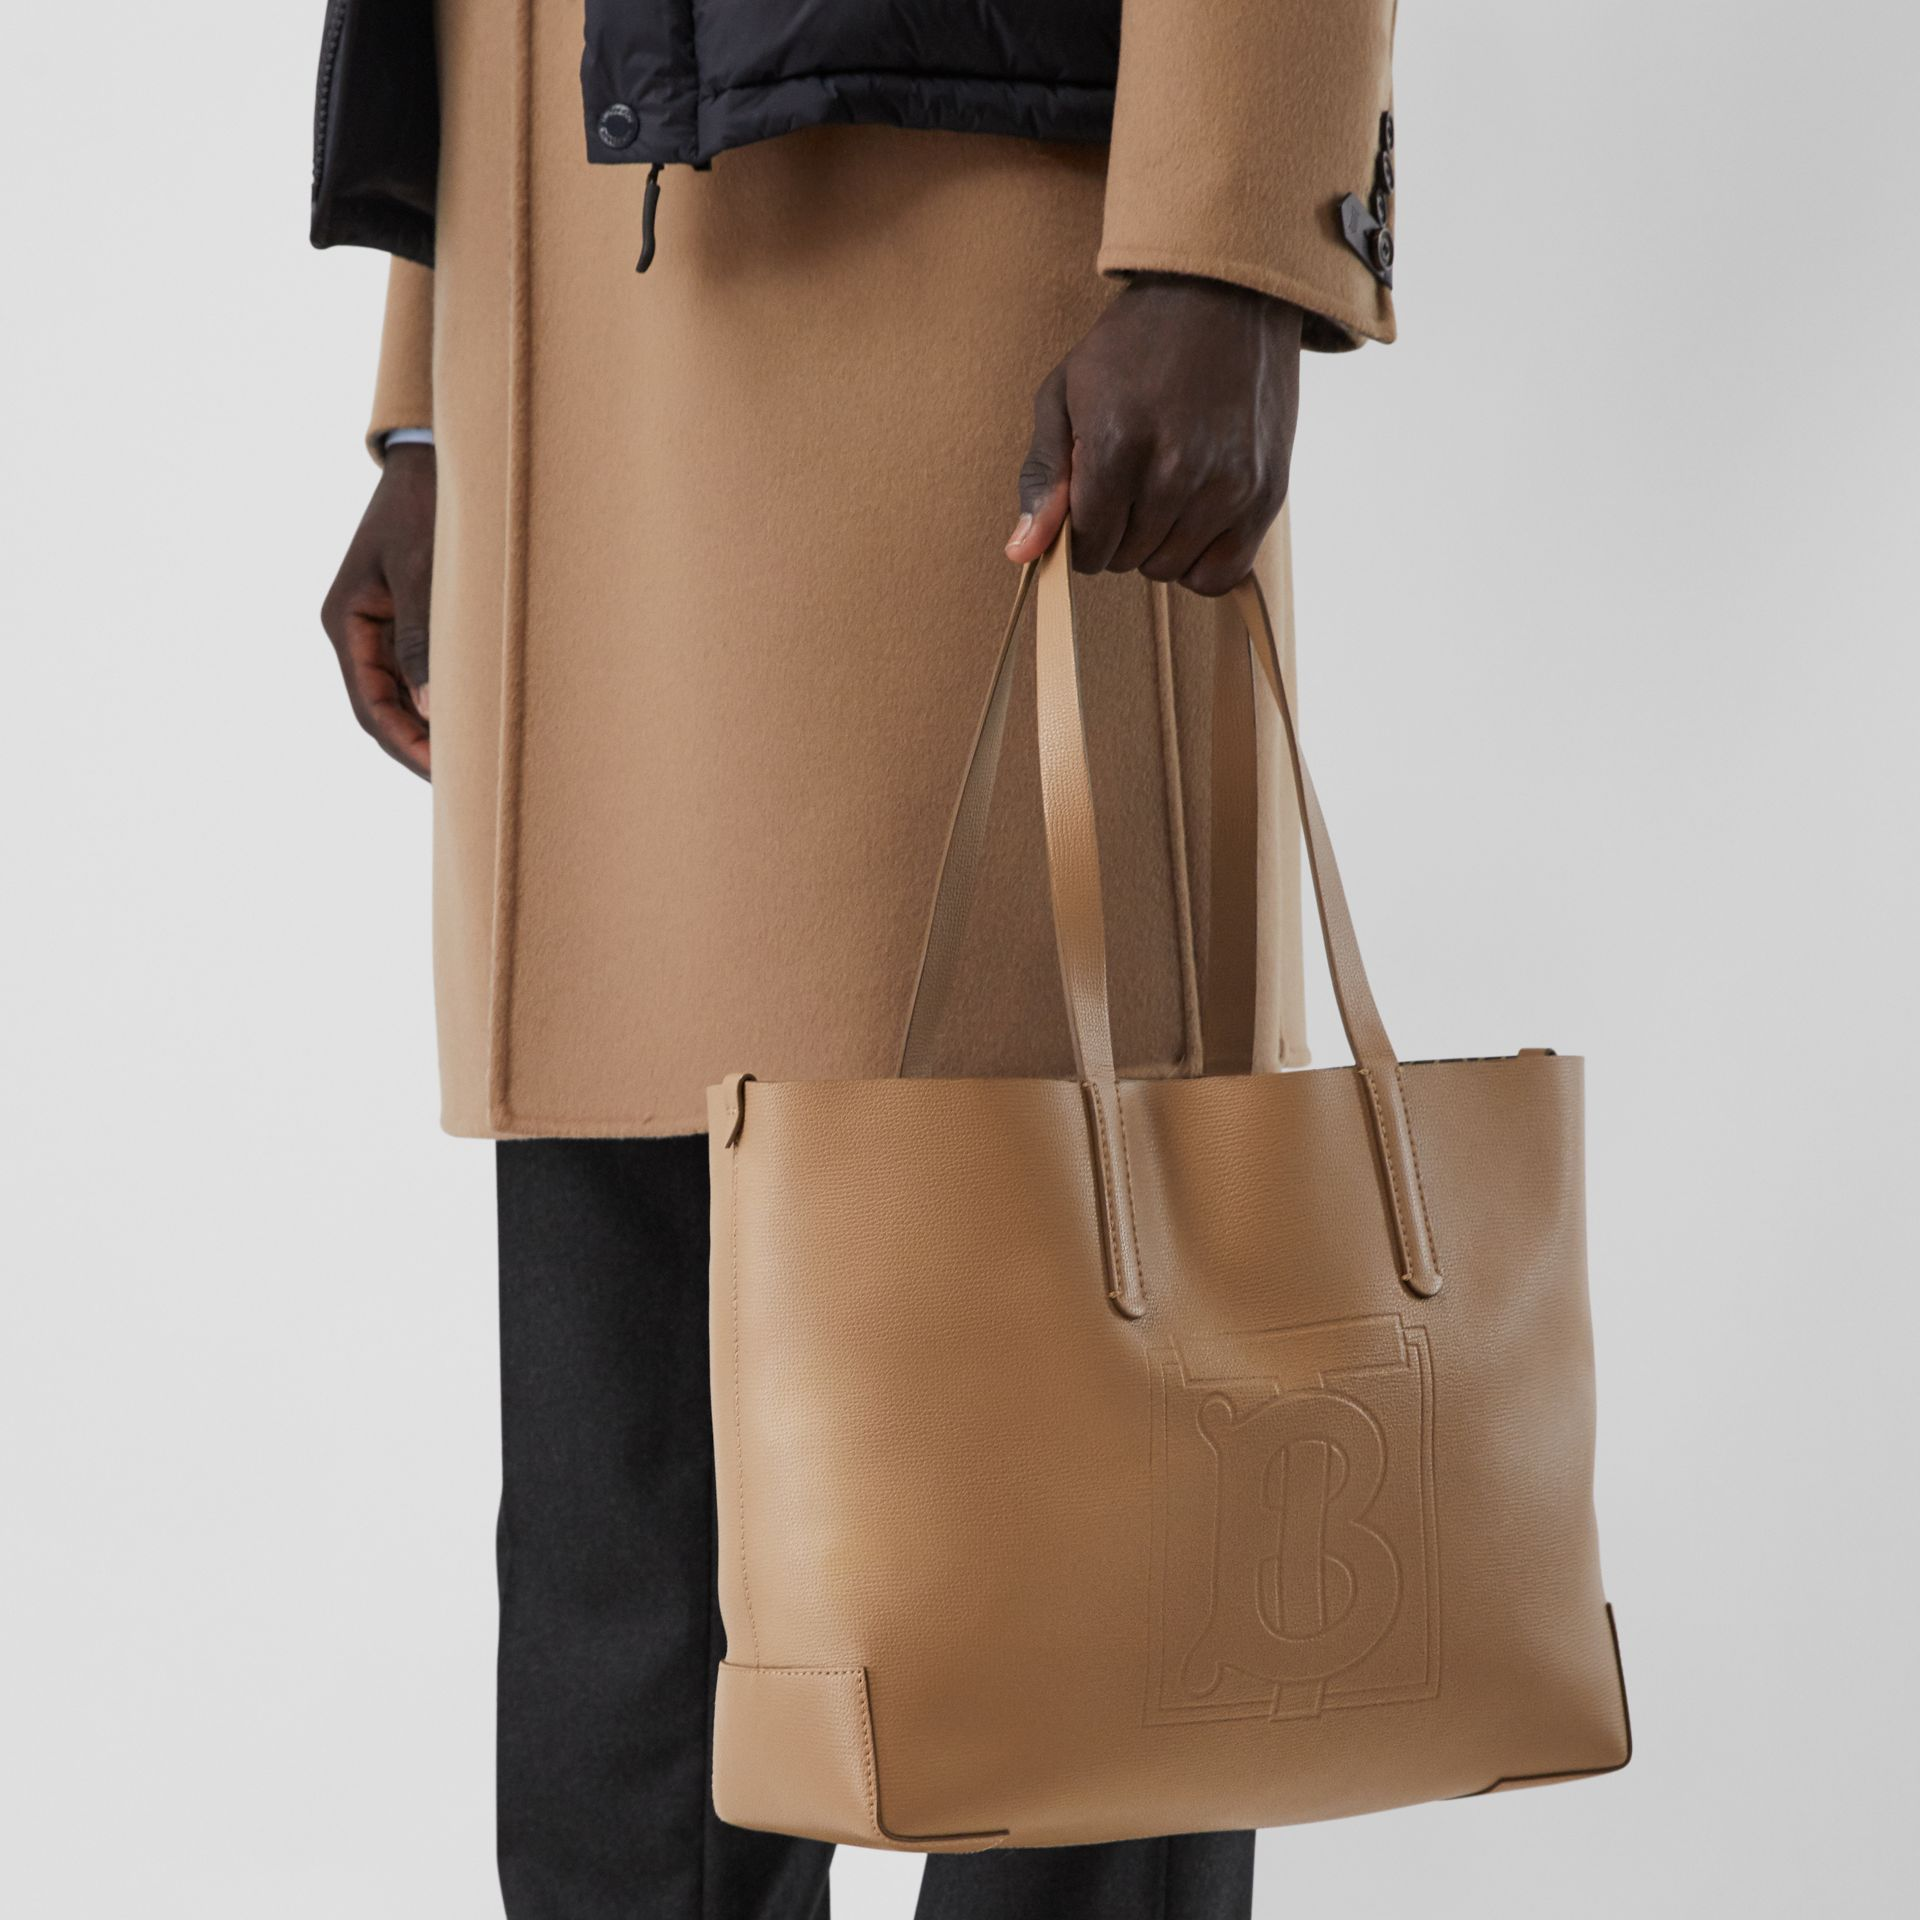 Embossed Monogram Motif Leather Tote in Camel - Women | Burberry Canada - gallery image 3